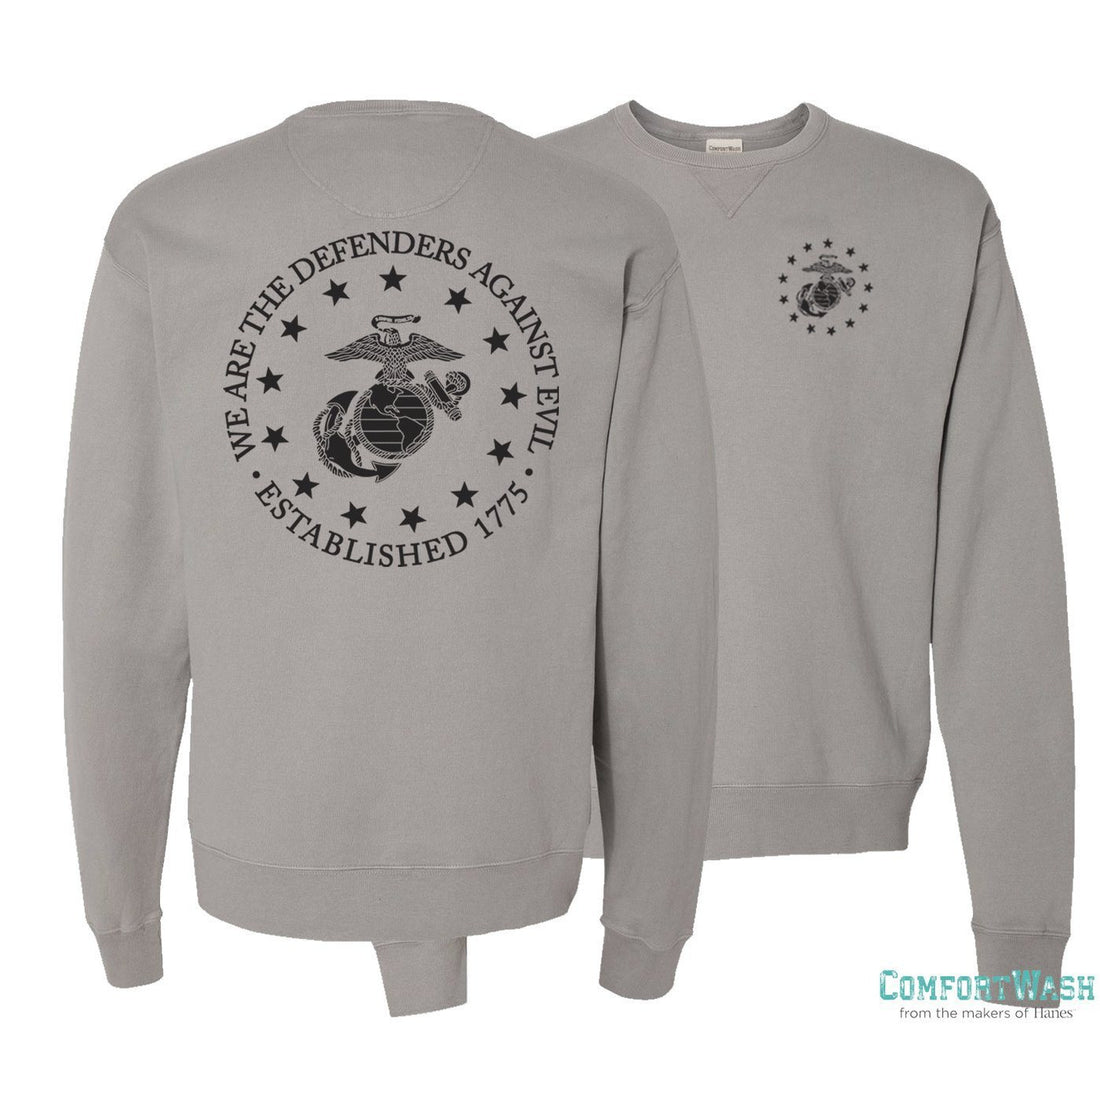 "Granite Marine Corps sweatshirt from Marine Corps Direct with the eagle, globe, and anchor on the back with the words ""We are the defenders against evil"" around it."